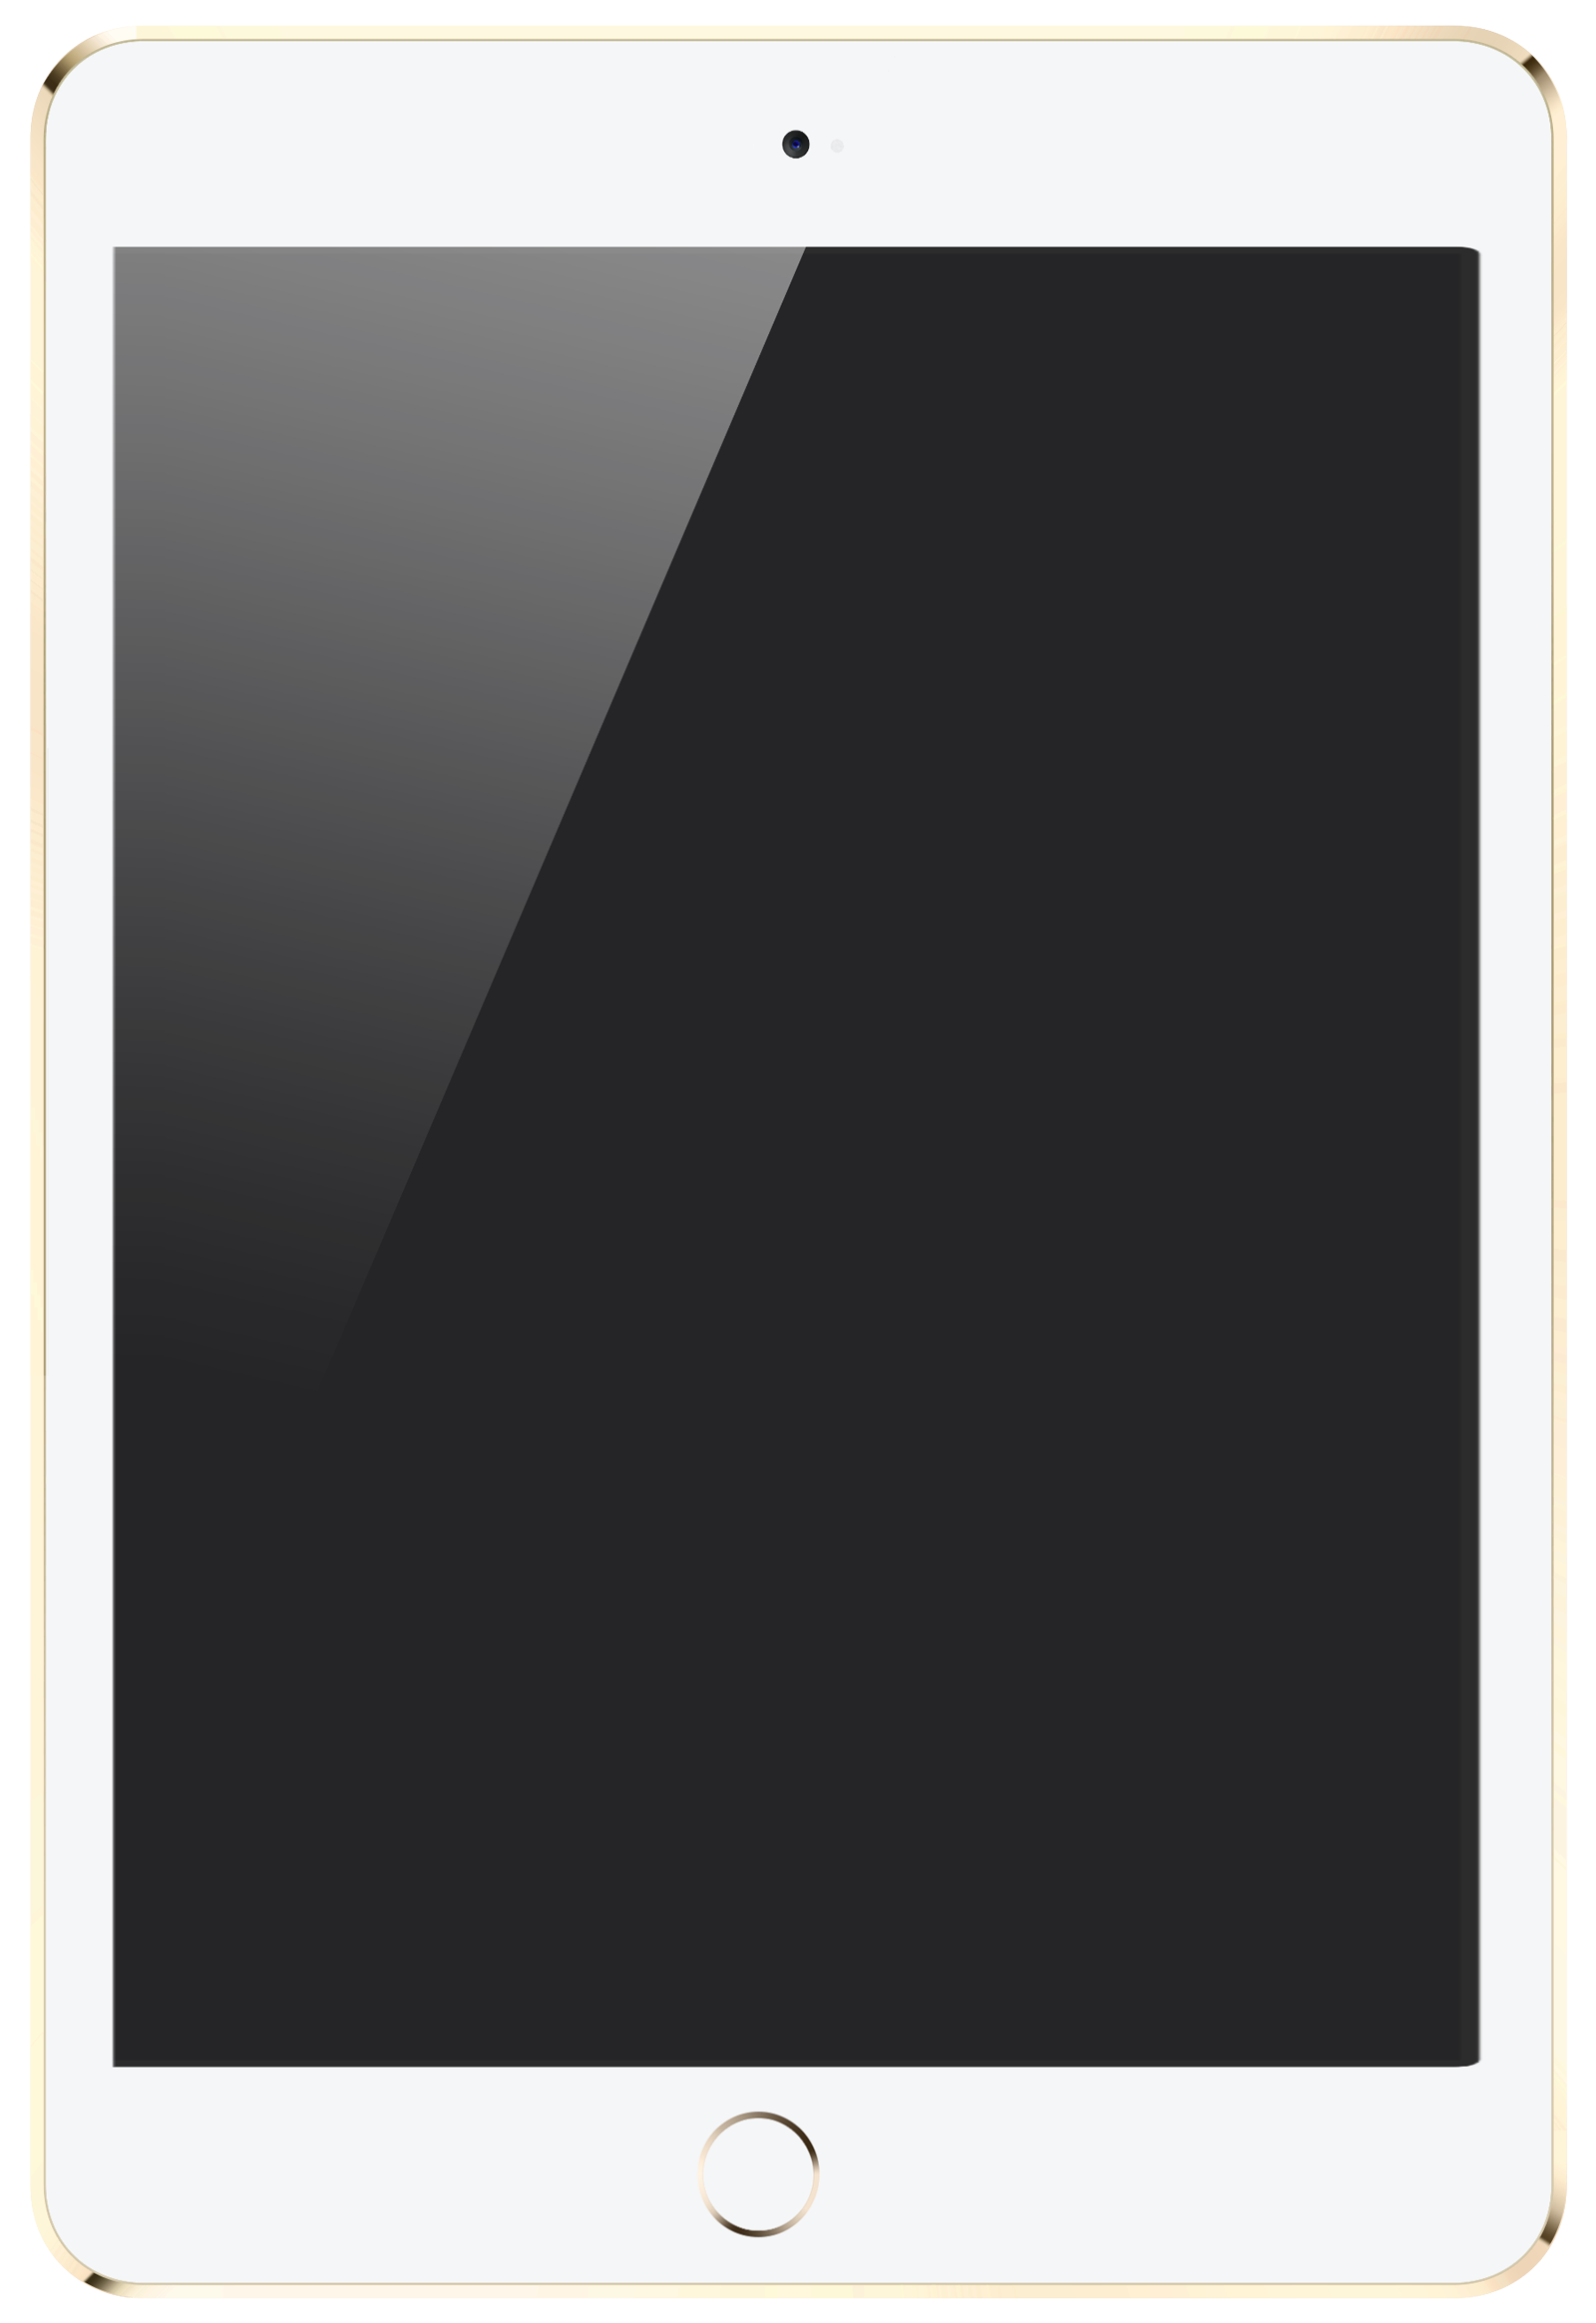 İpad Air Png - IPad Air Tablet PNG Image - PurePNG | Free transparent CC0 PNG ...